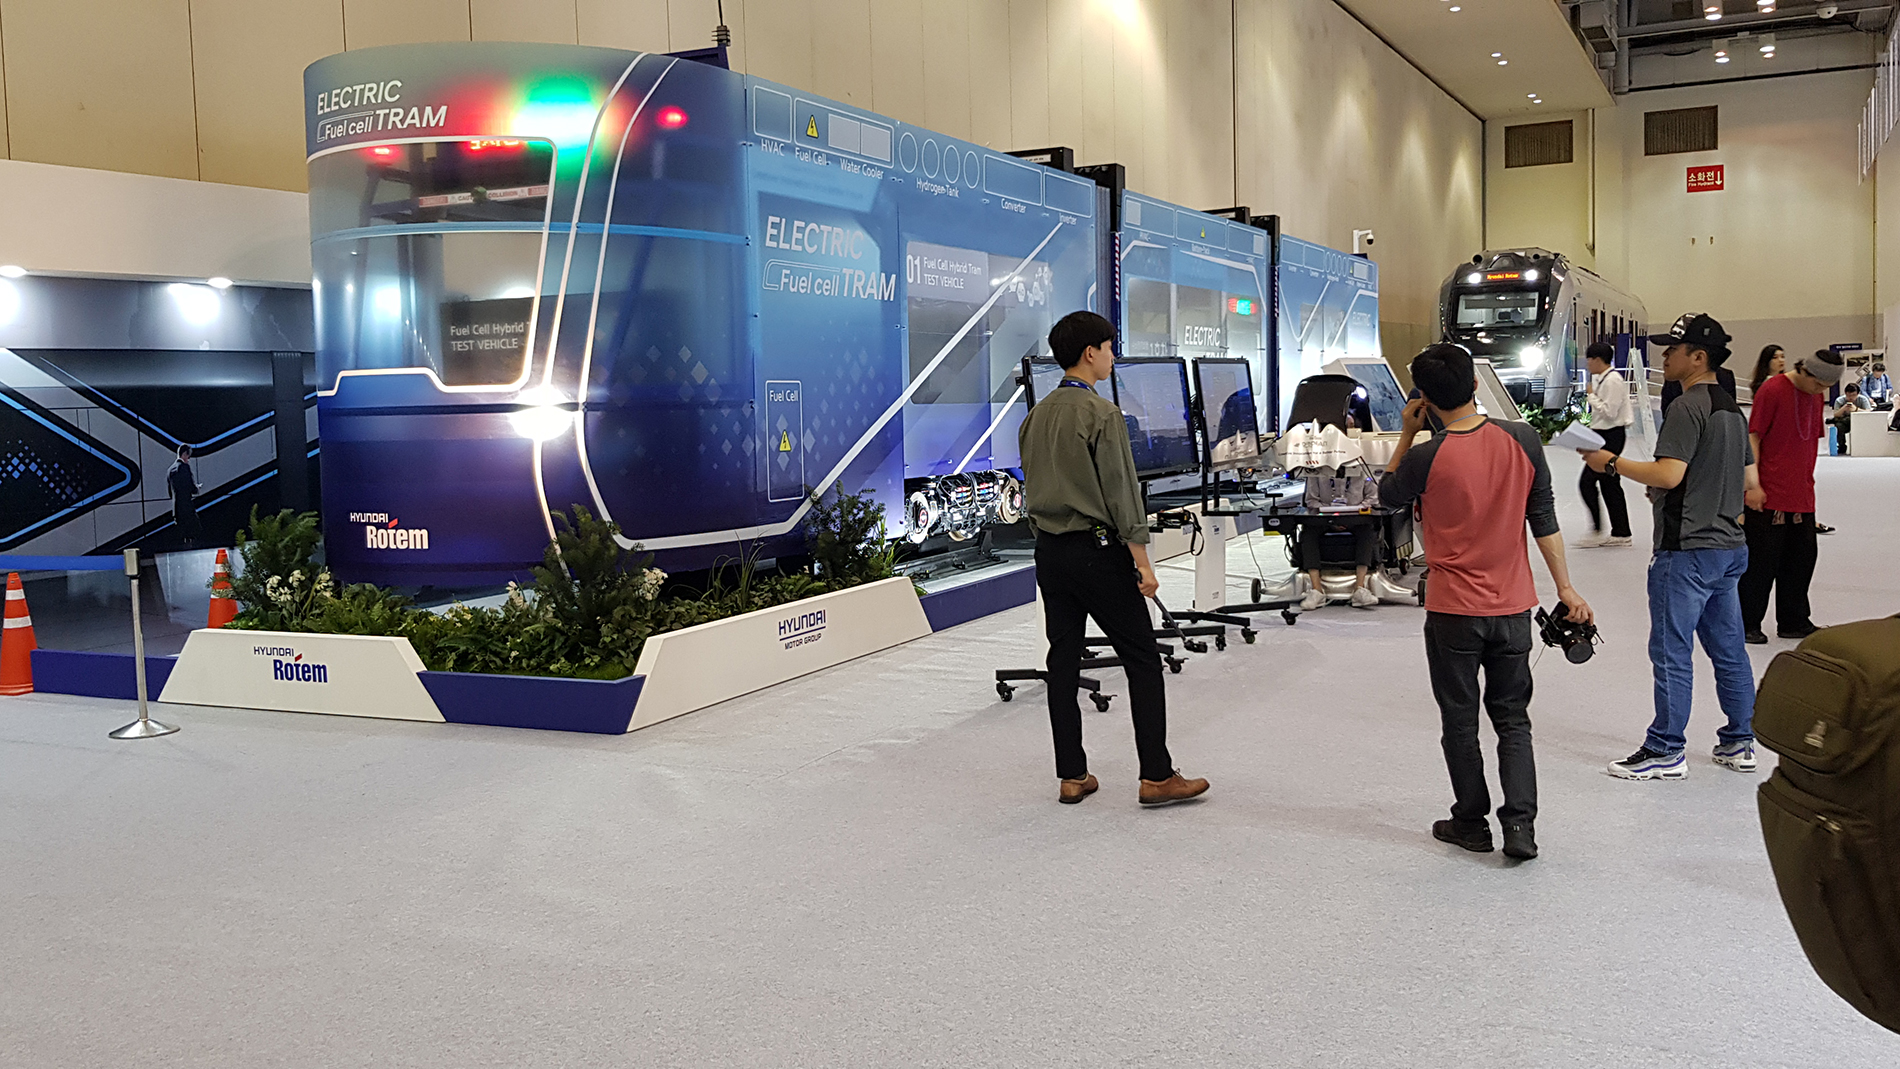 Electric Fuel Cell Tram